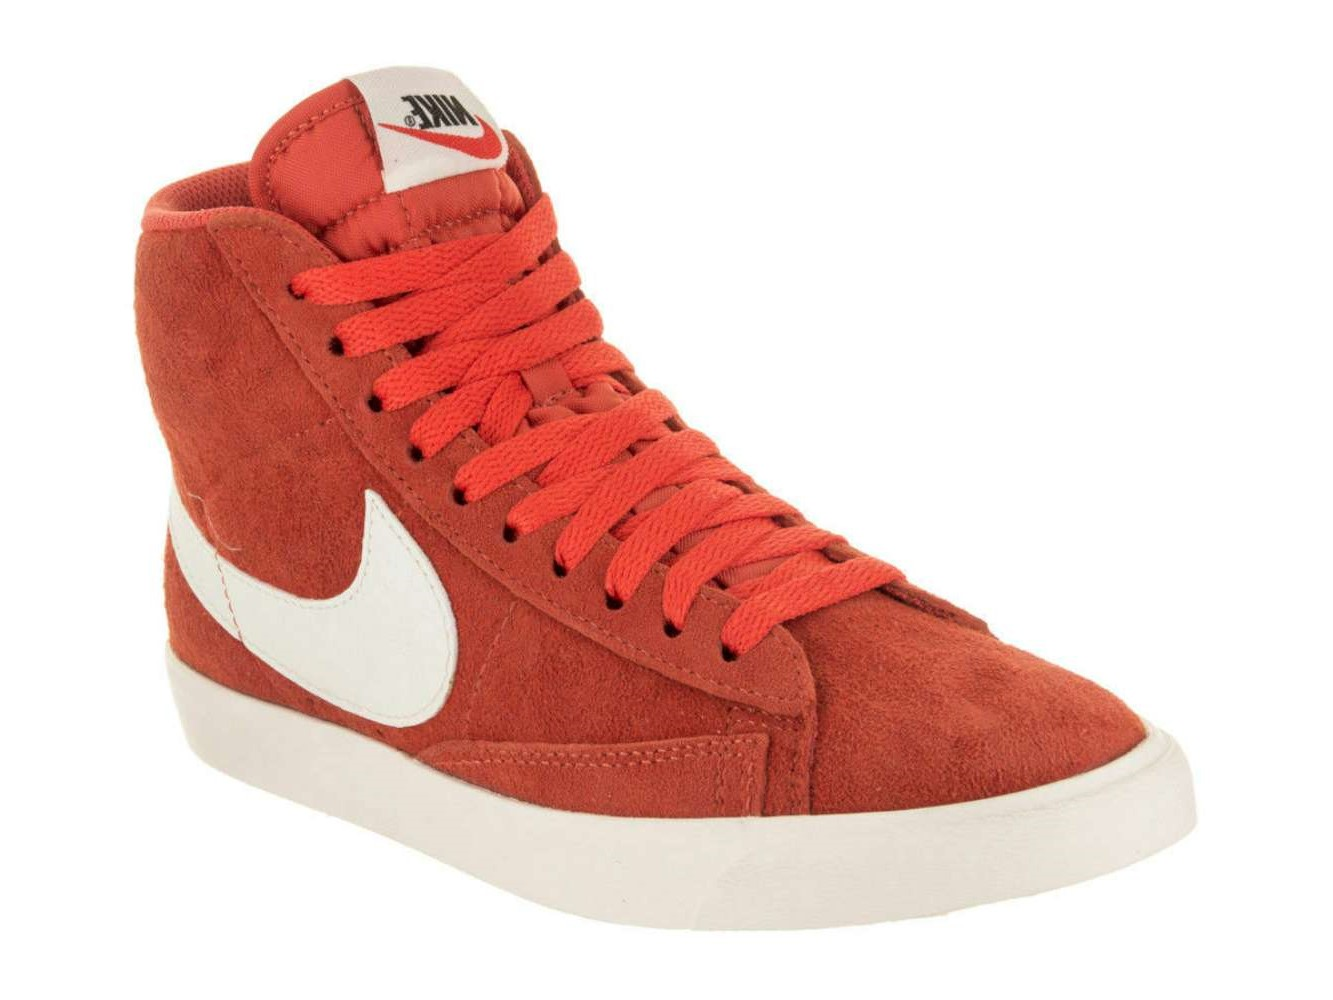 Details about Nike Womens Blazer Mid Suede Hight Top Lace Up Fashion, Orange, Size 6.0